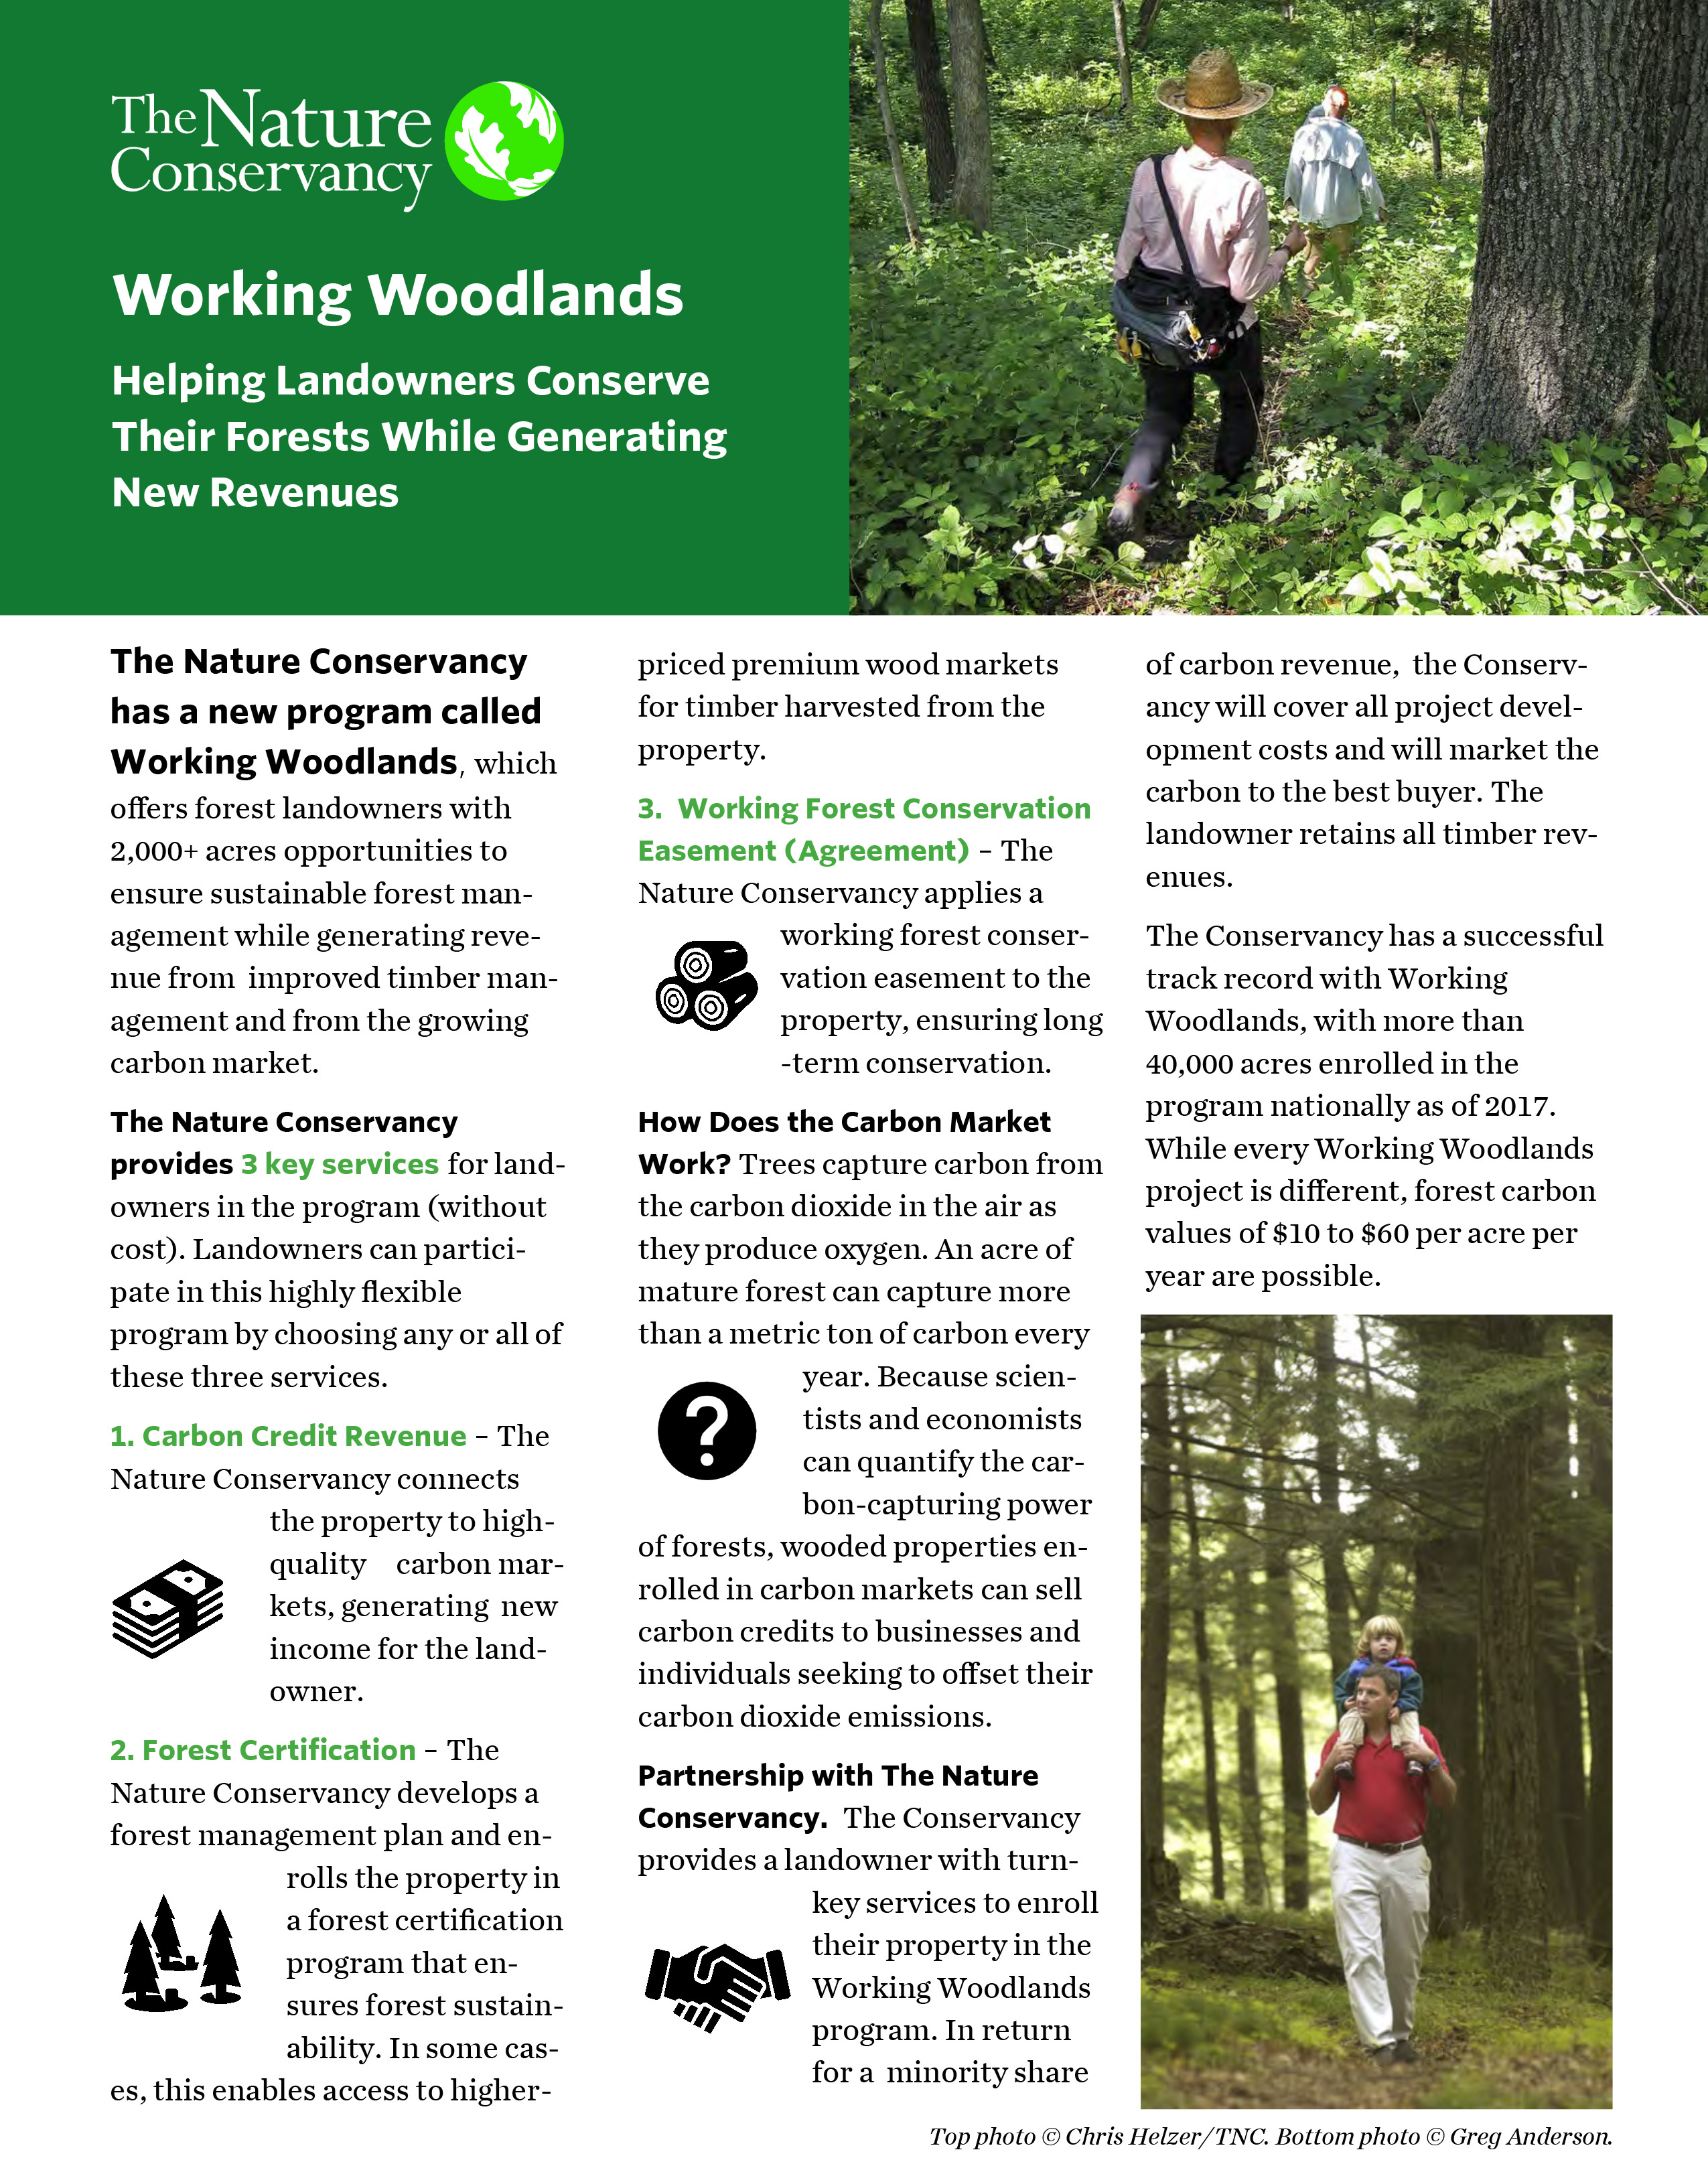 Brochure on our Working Woodlands program in Tennessee.